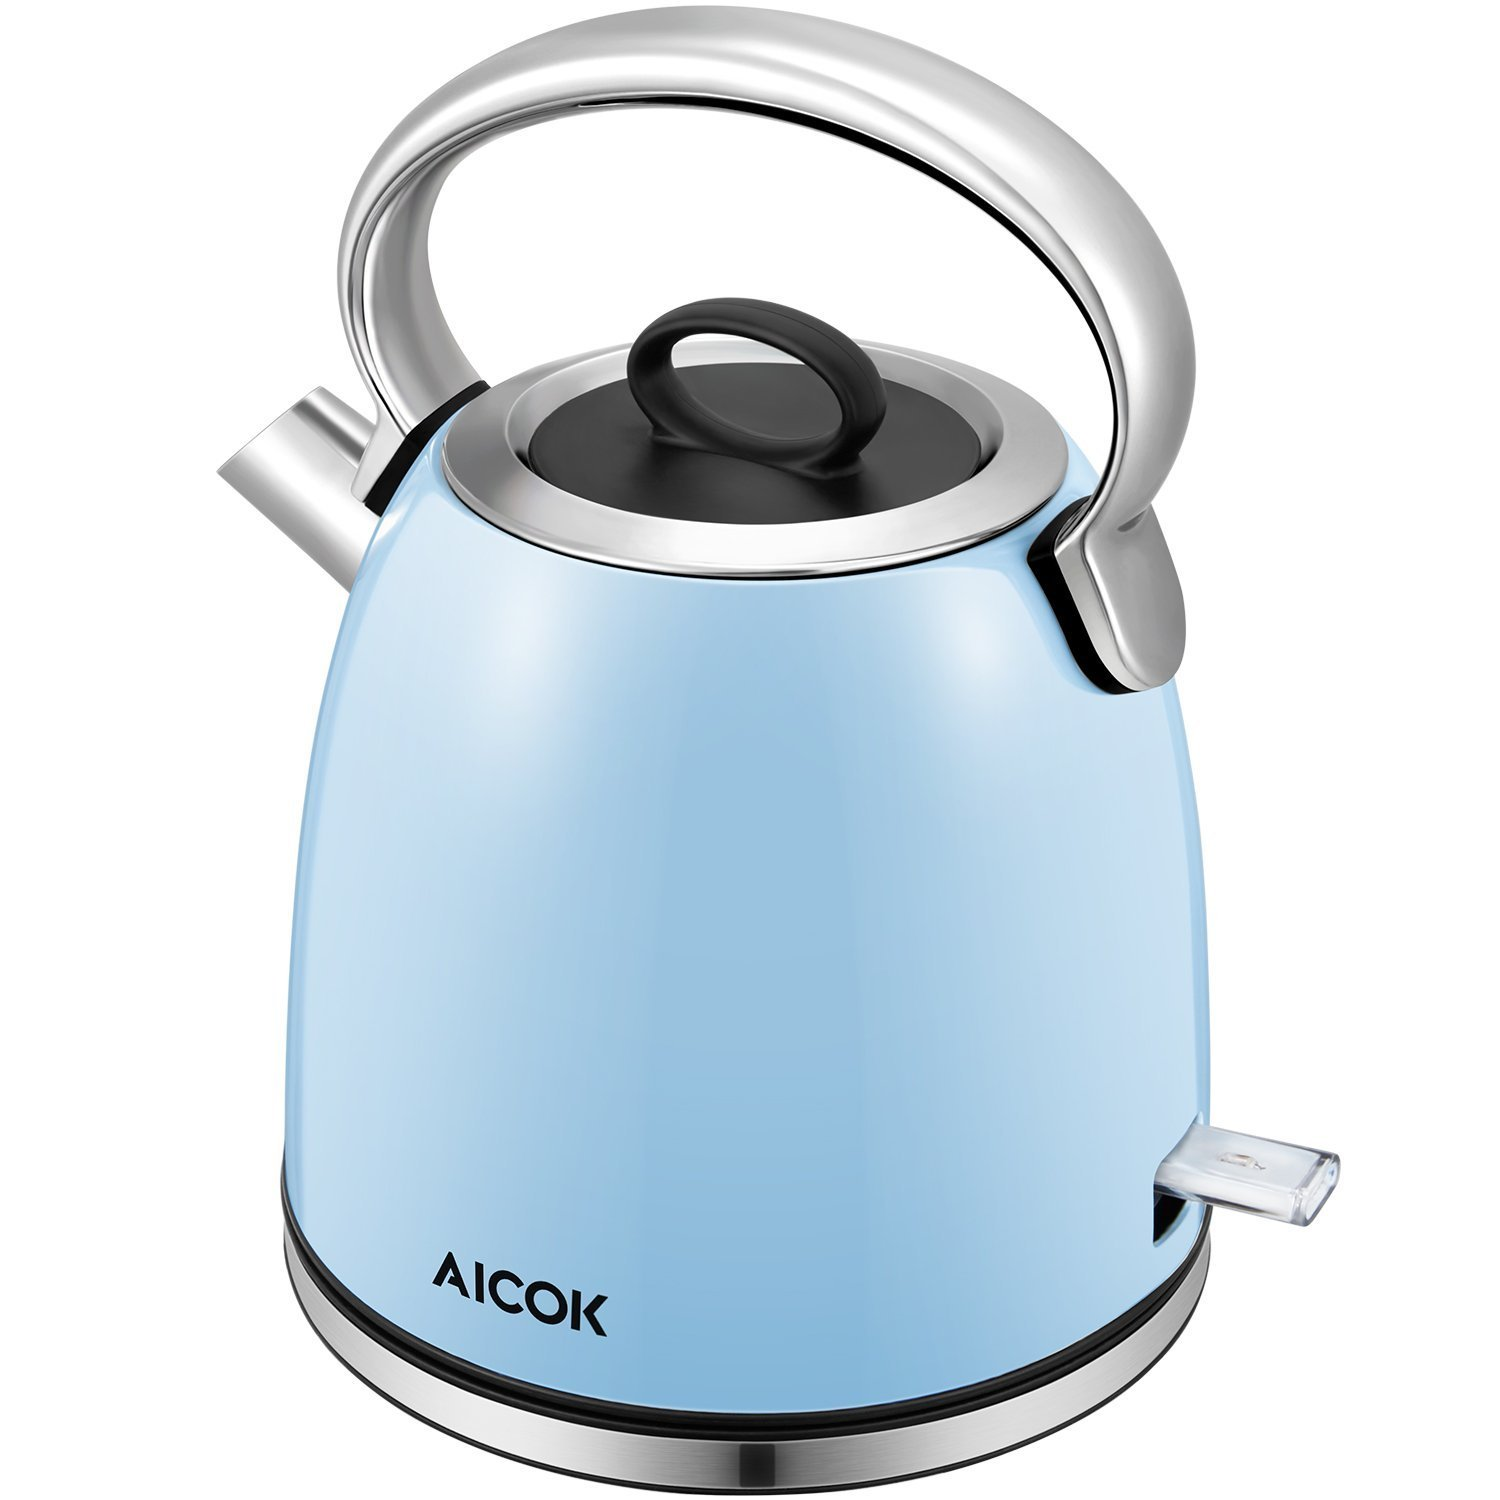 Aicok Electric Tea Kettle, 1.7-Liter Brushed Stainless Steel Kettle with Anti-oxidant Blue Coating, Retro Style with Modern Feature Water Kettle, Auto Shut Off, 1500W